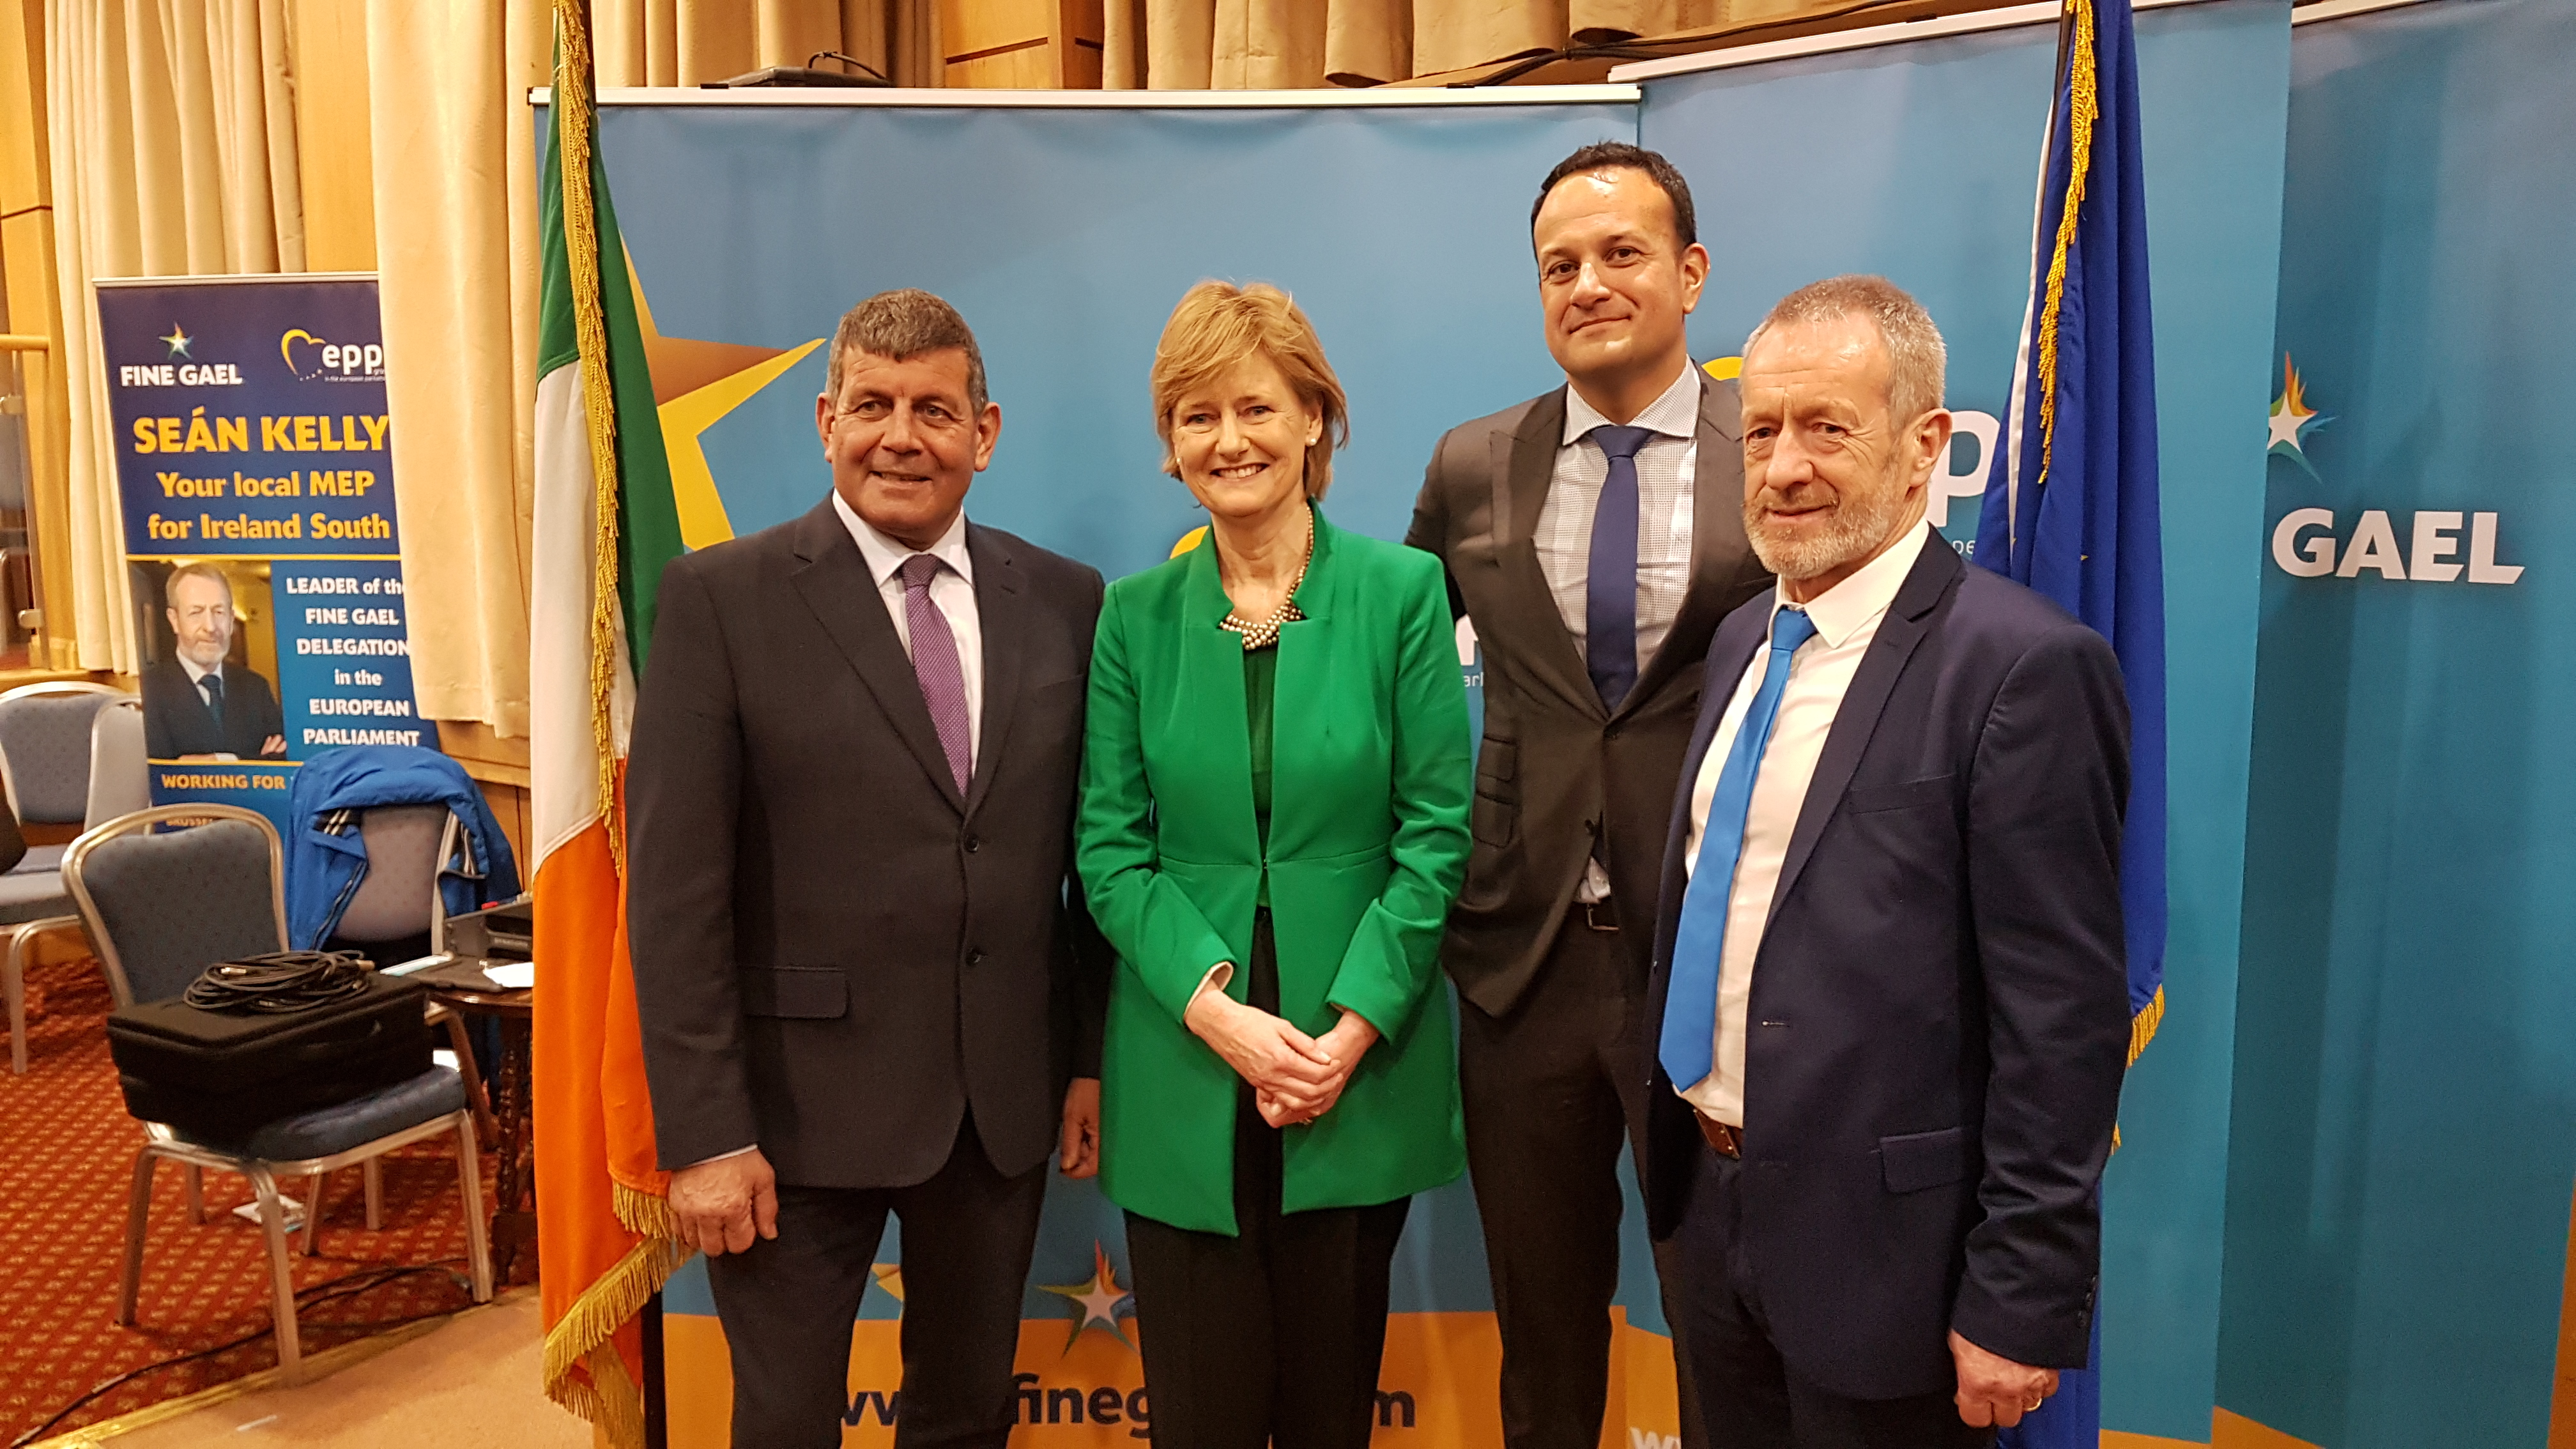 Clune, Kelly and Doyle to contest the European Parliament election in the Ireland South constituency for Fine Gael